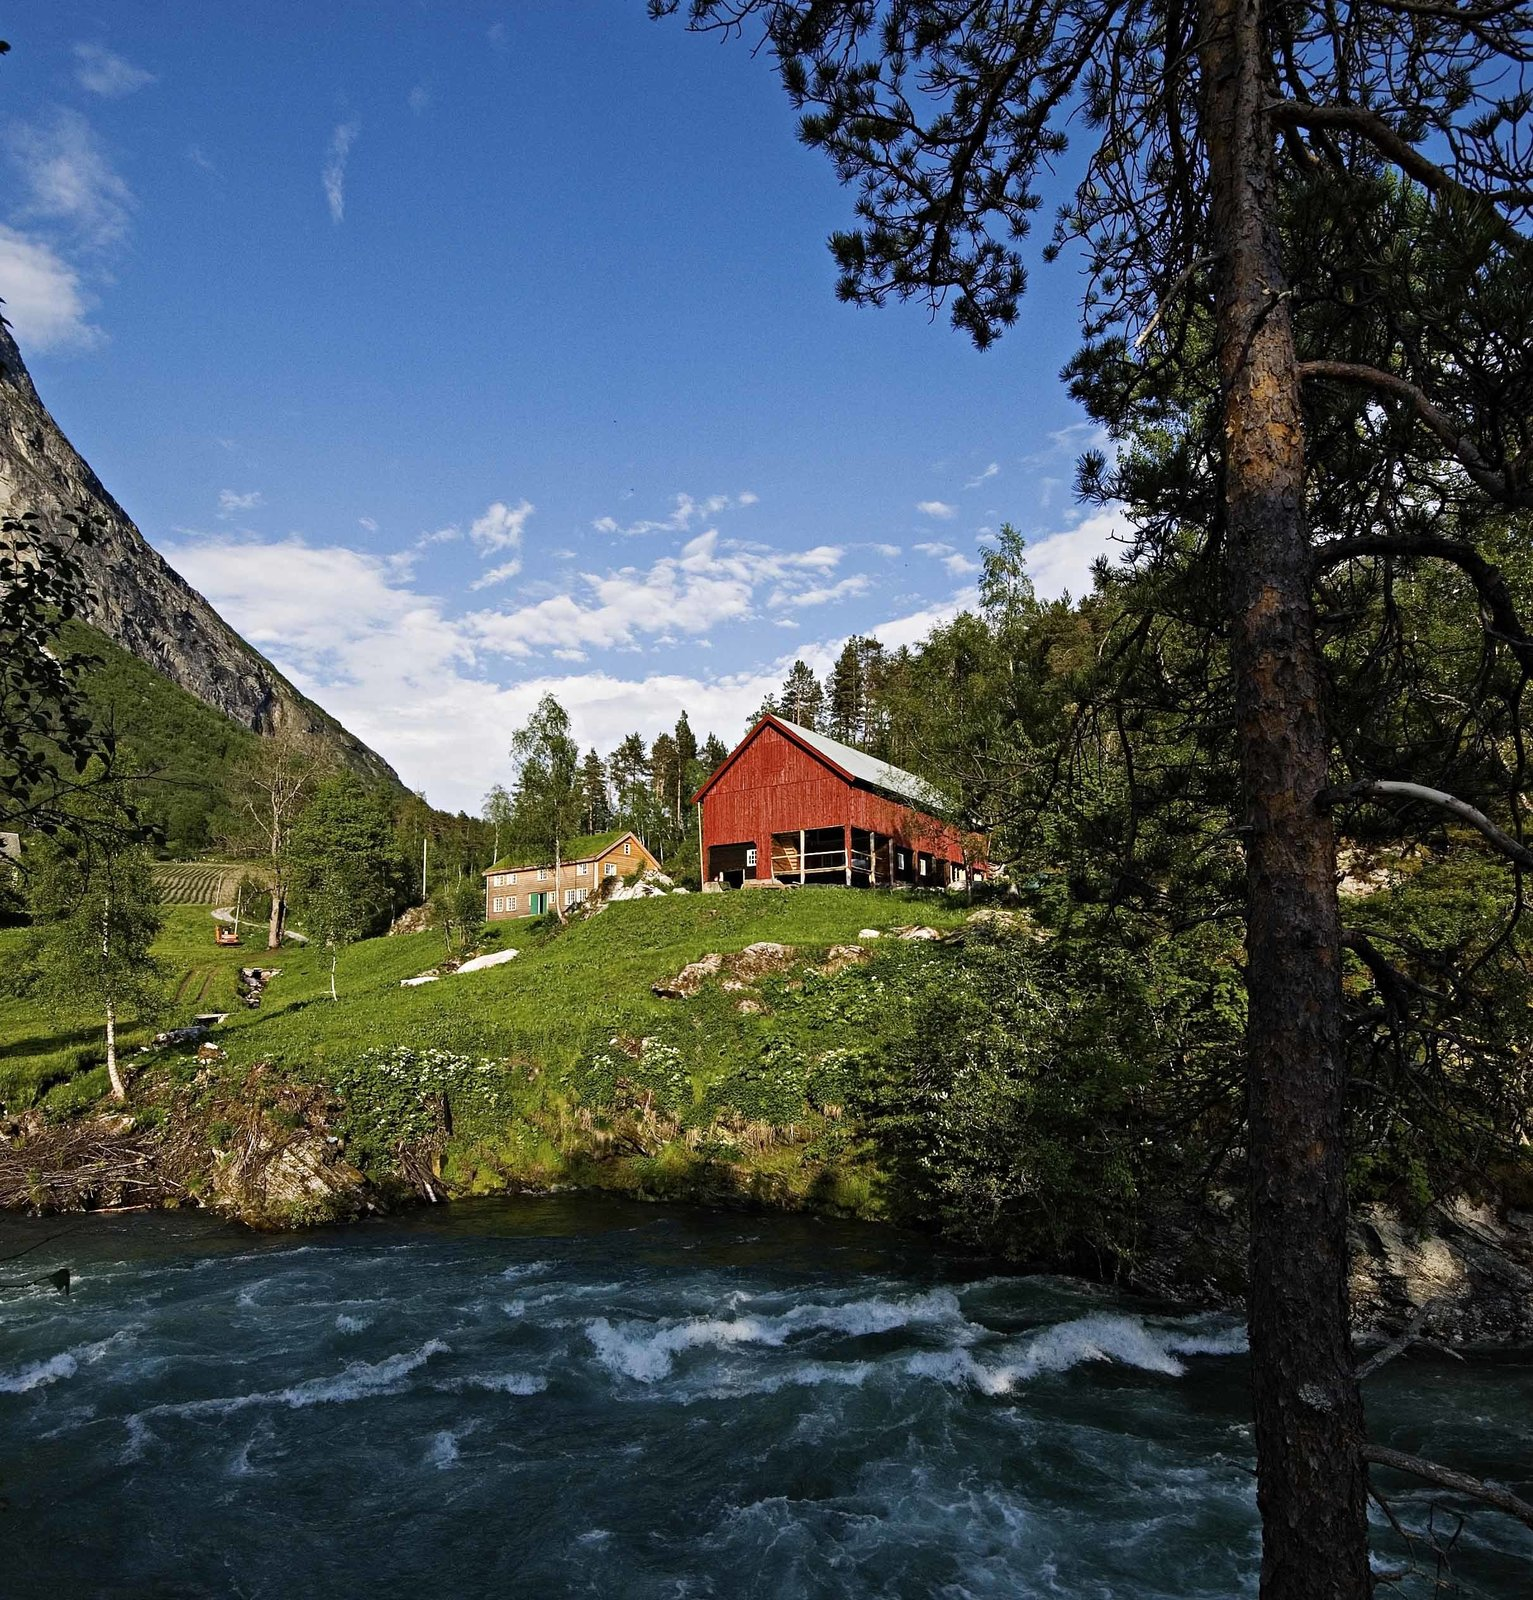 Outdoor, Slope, Trees, and Grass The Juvet is tucked into the woodsy corner of a classic Norwegian farm on the banks of the rushing Valldola River. The farm has existed here since at least the 1500s.  Photo 3 of 8 in Rustic Cabins Comprise This Impossibly Idyllic Hotel in Norway